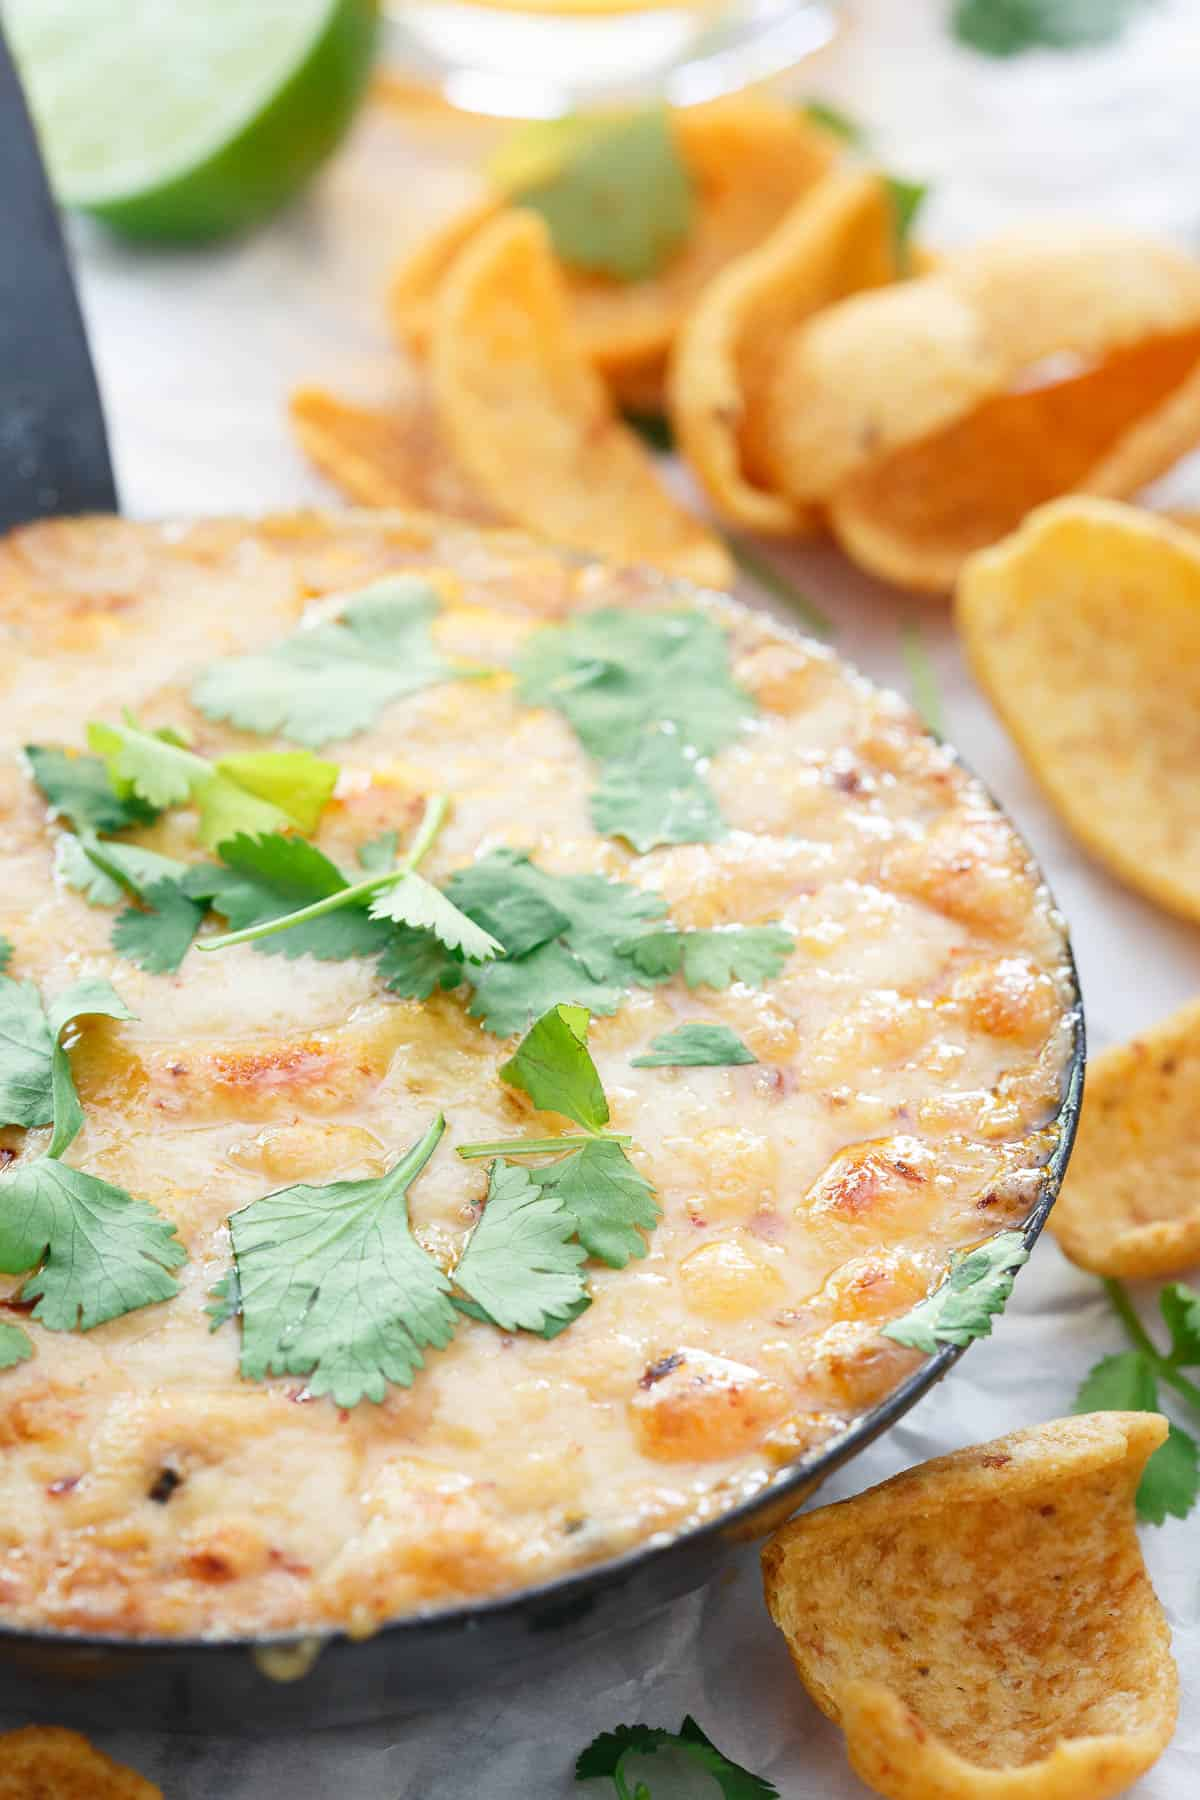 Celebrate National Hummus Day with this Chipotle Hummus Fundido